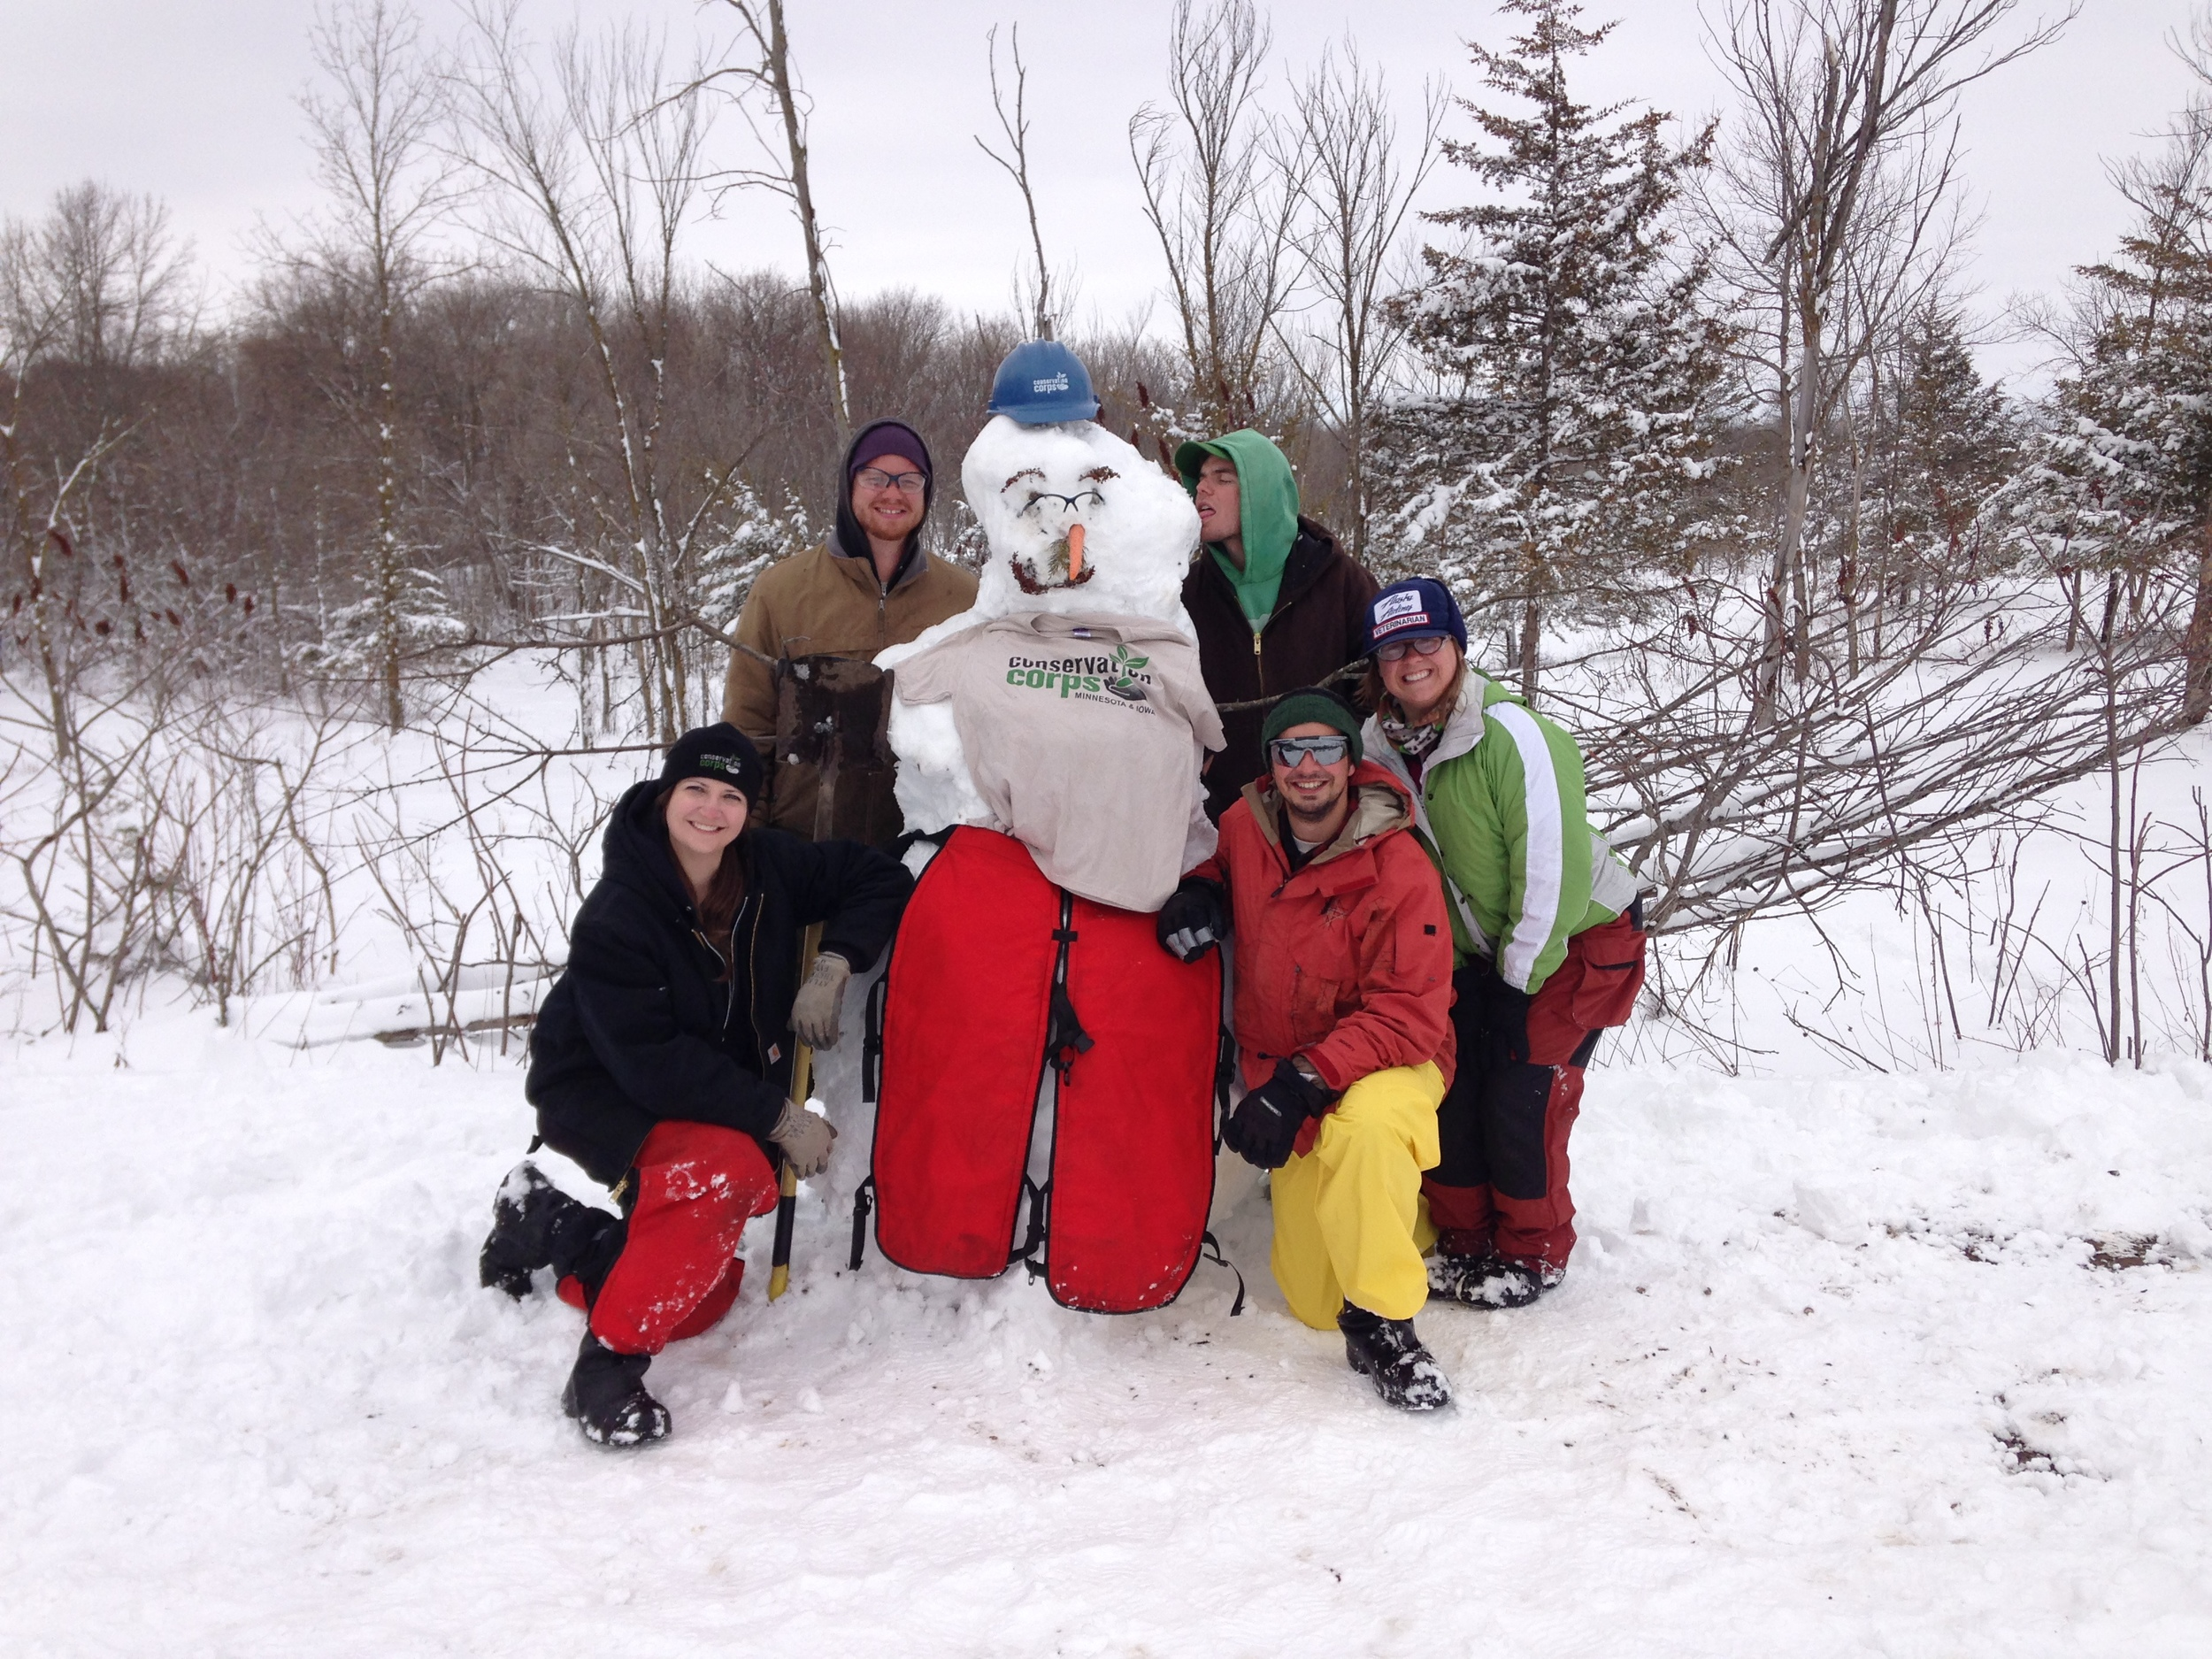 When life gives you snow, you make a snowman and have fun with it.